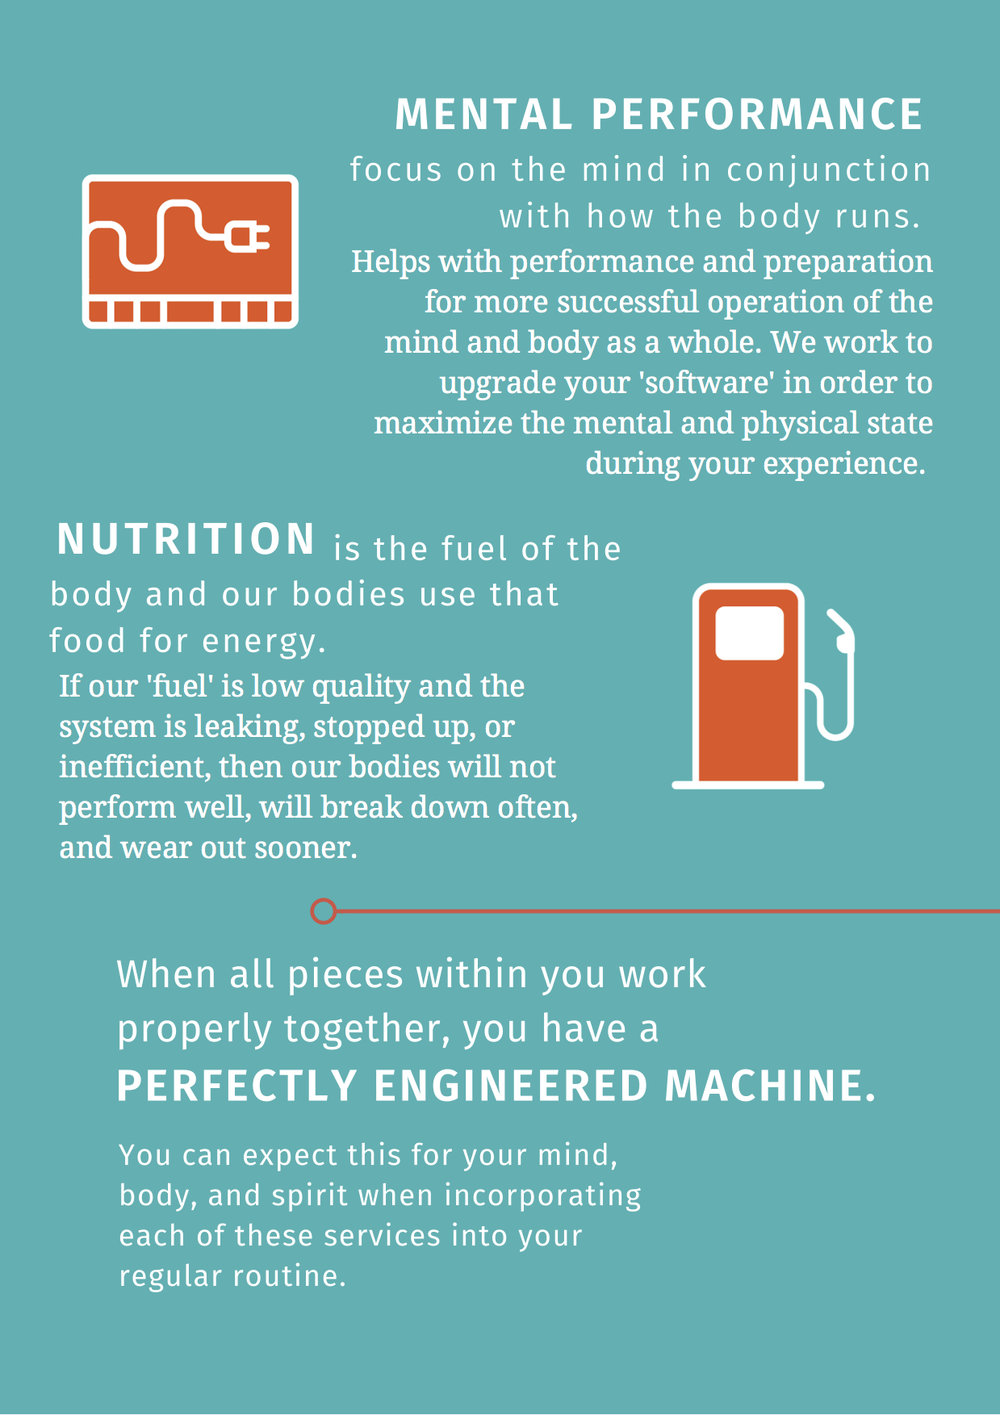 thrive_machine infographic 2.jpg